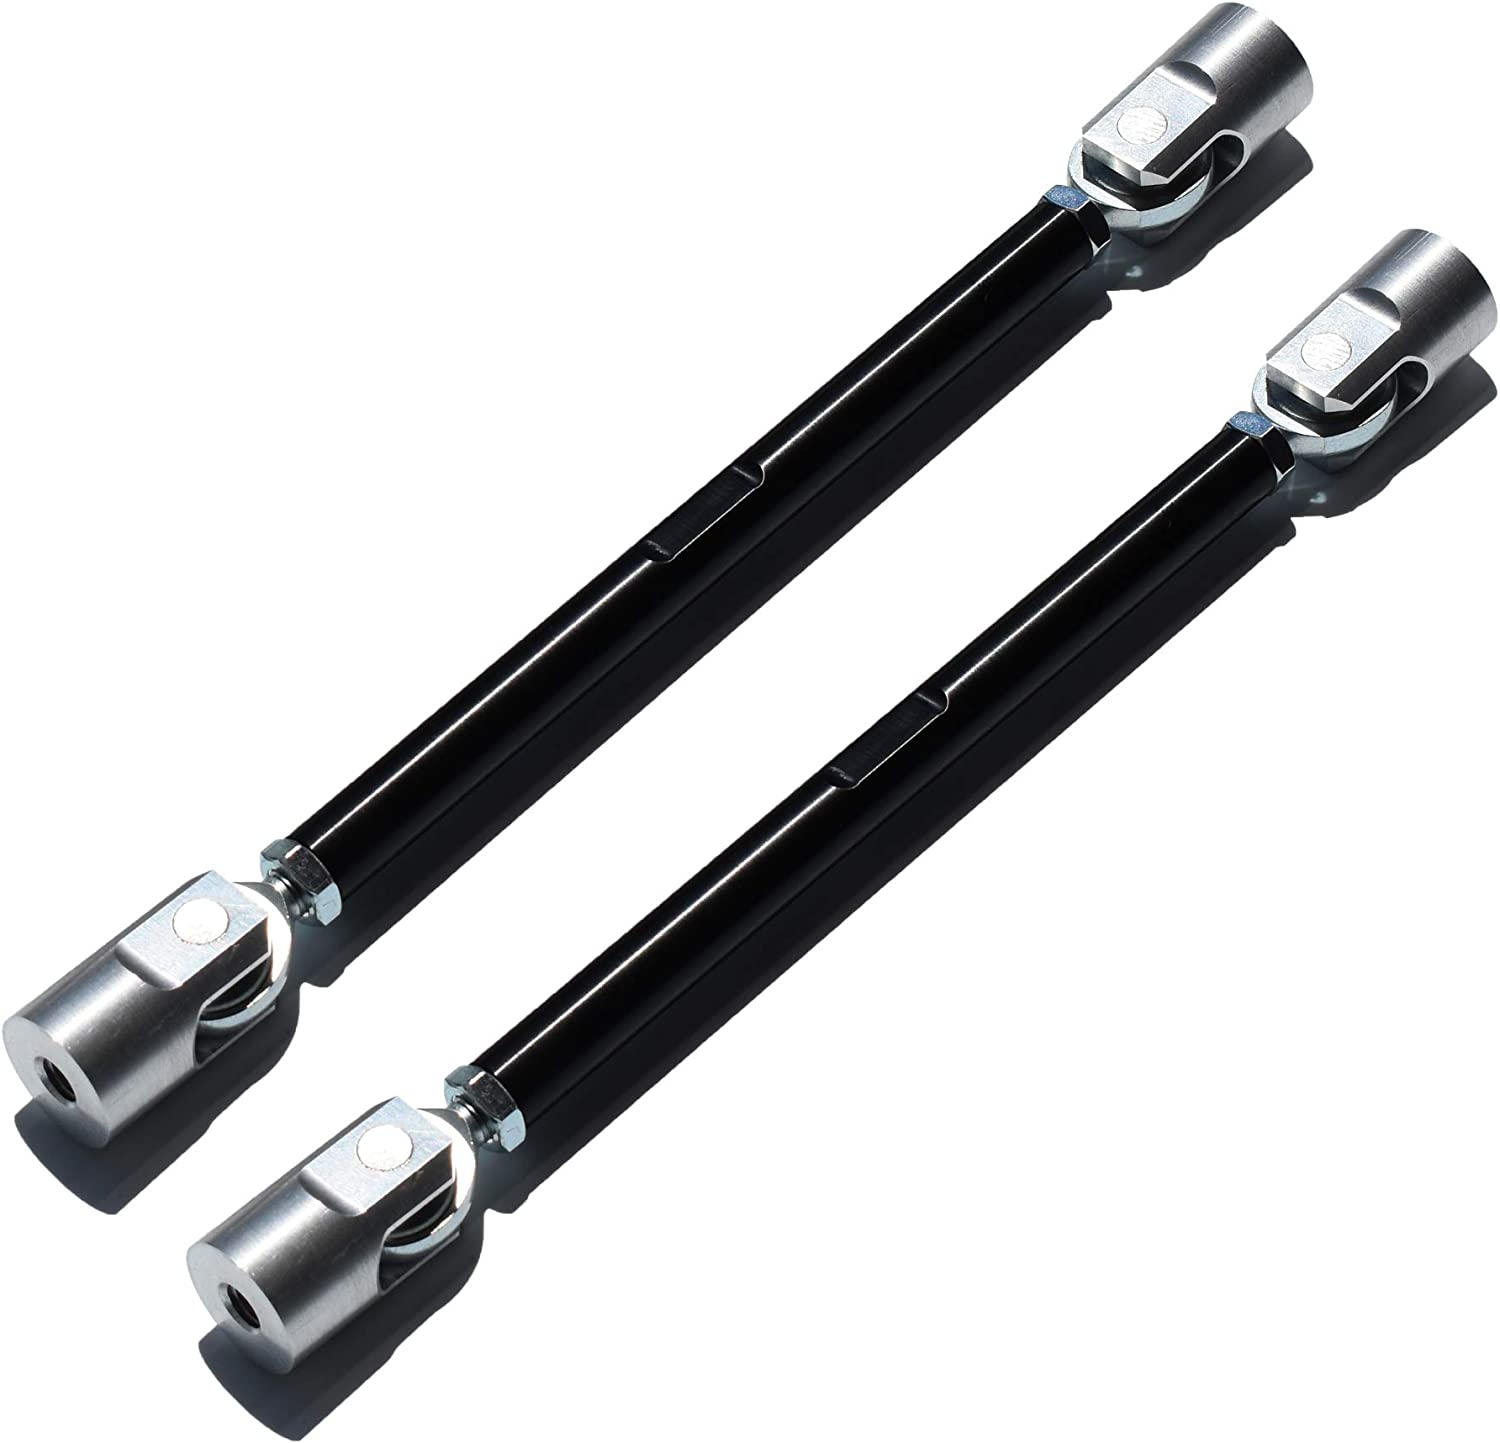 Pair FS Performance Engineering Silver Splitter Support Rods 8.5-10.25